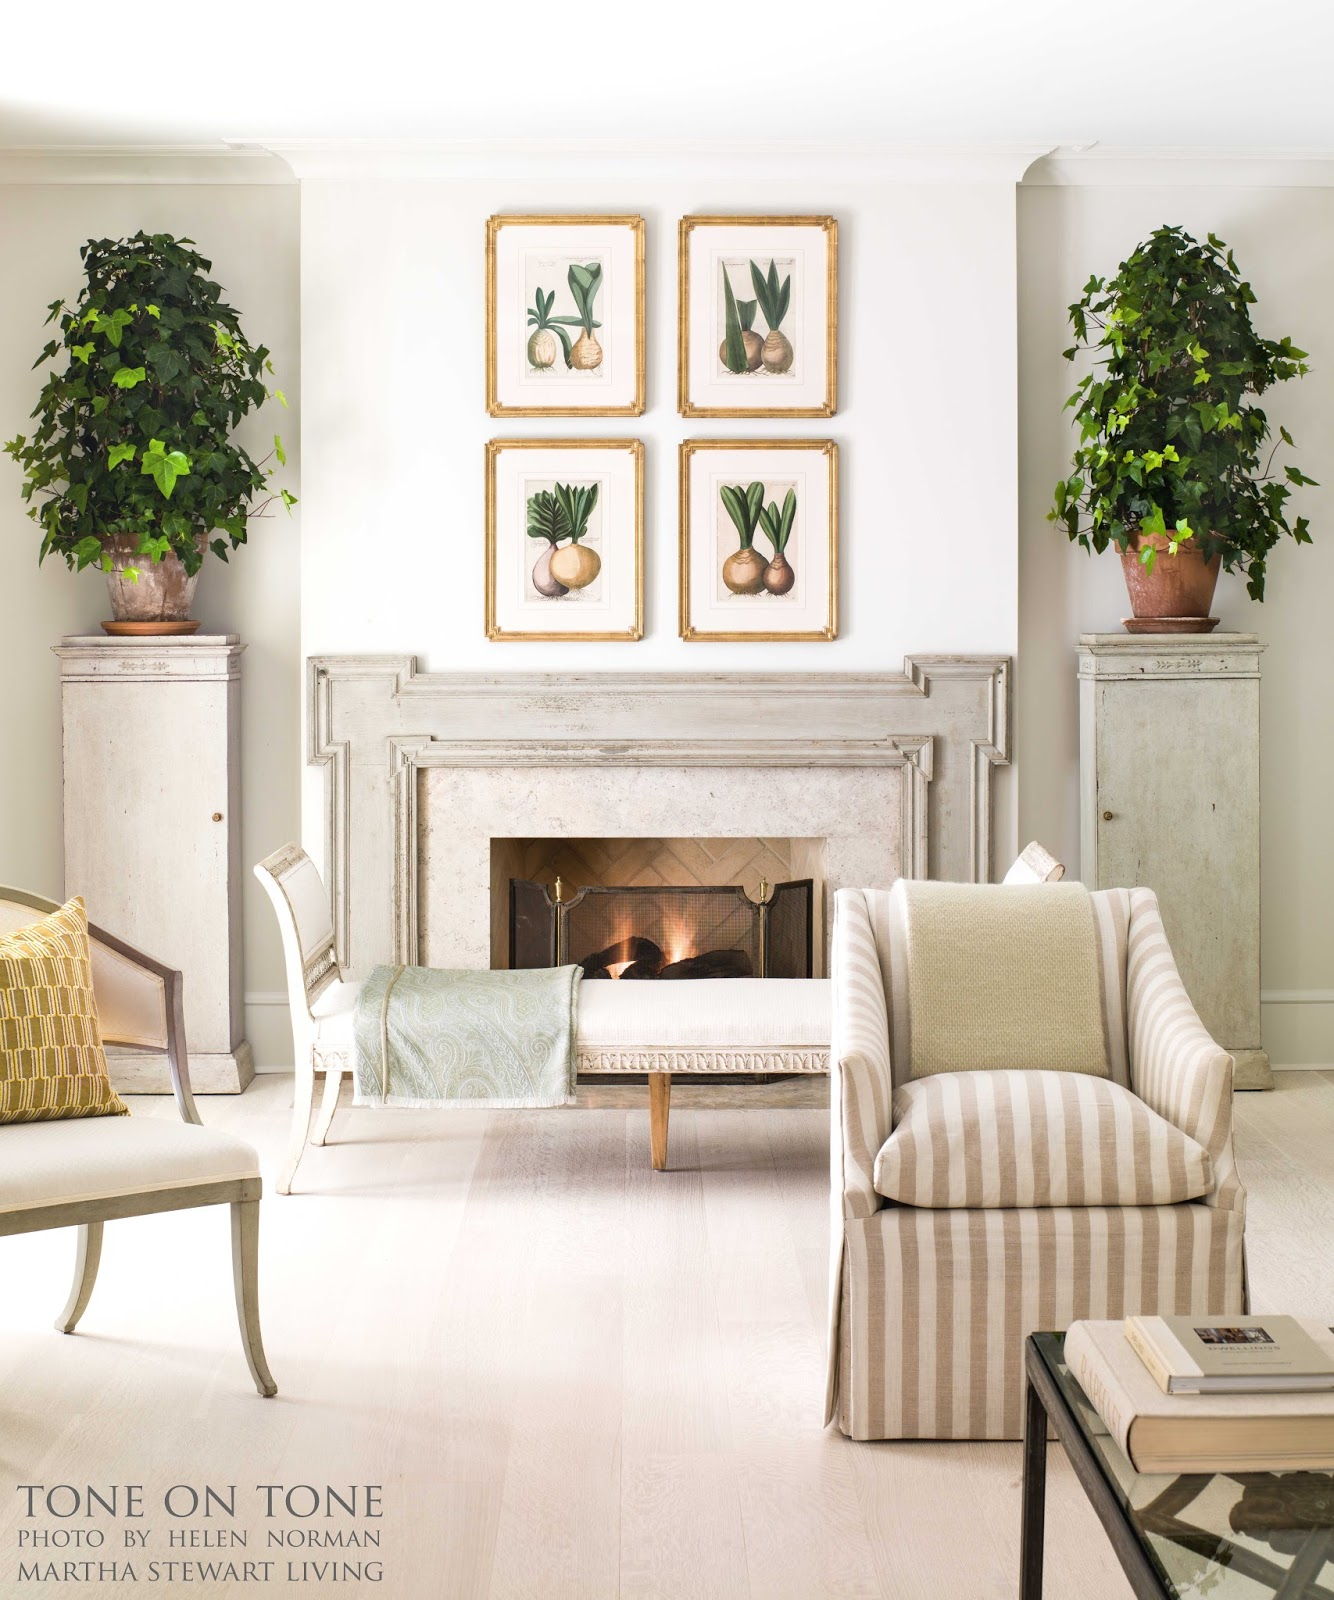 martha stewart living room. Here s a sneak preview  Click on photo to enlarge Please pick up copy enjoy more photos plus the full article newsstands now Cheers Tone in Martha Stewart Living